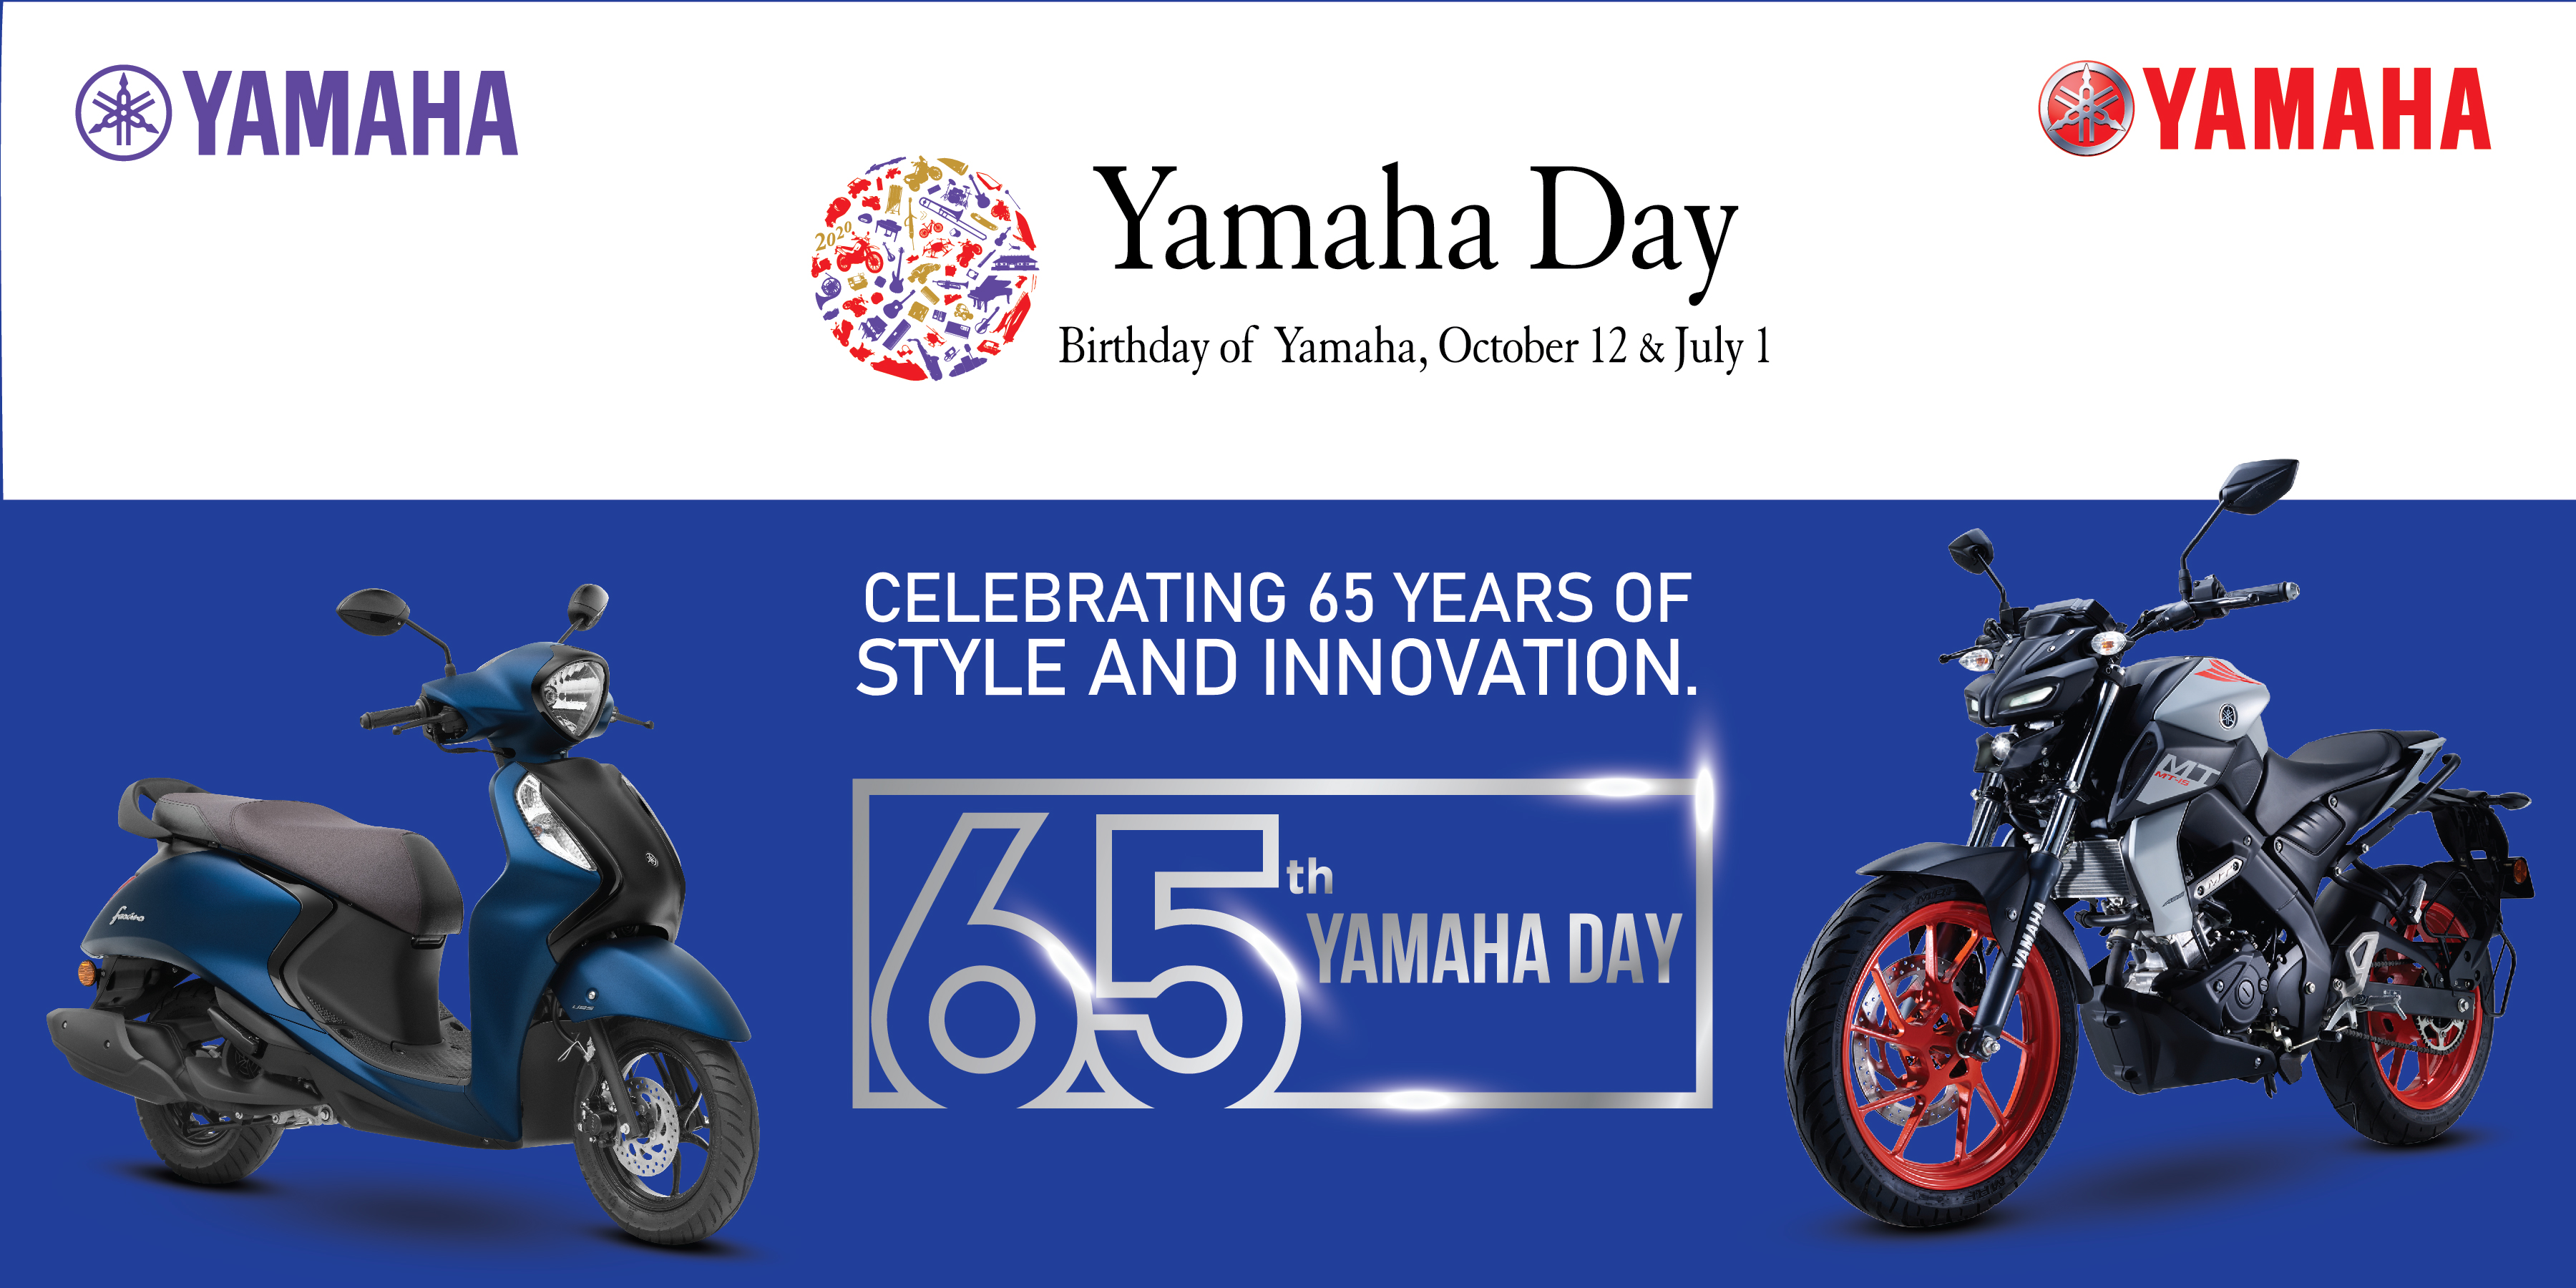 Yamaha celebrates 65th anniversary